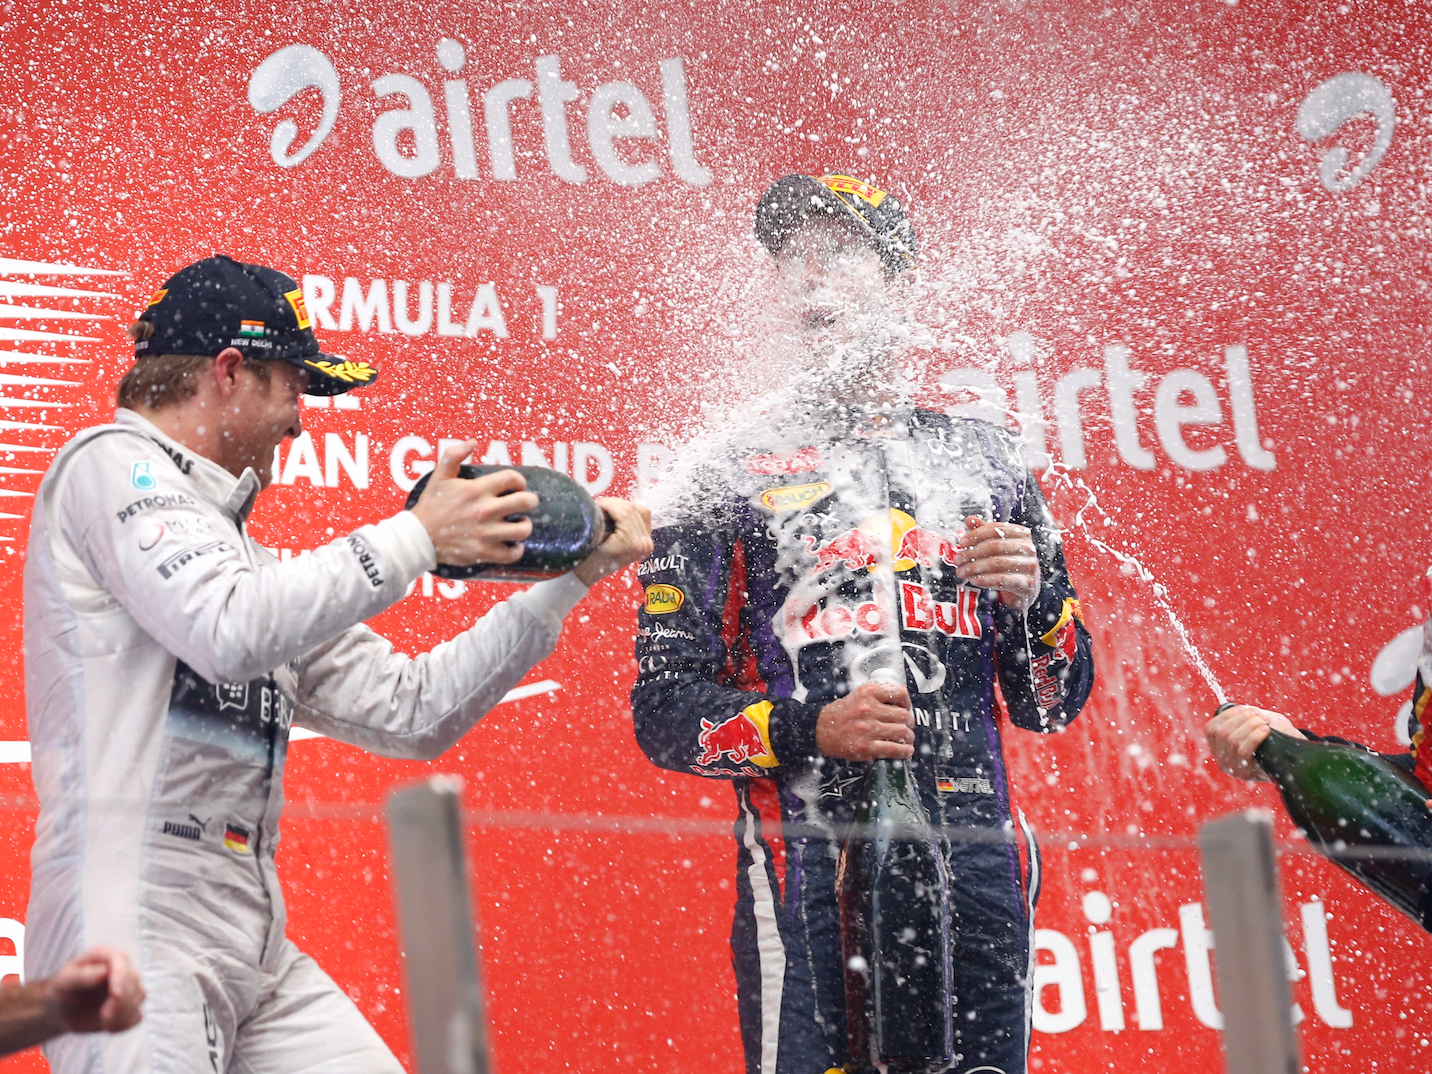 Mercedes Formula One driver Nico Rosberg of Germany (L) and Lotus F1 Formula One driver Romain Grosjean (R) of France spray champagne on the face of Red Bull Formula One driver Sebastian Vettel of Germany on the podium after the Indian F1 Grand Prix at the Buddh International Circuit in Greater Noida, on the outskirts of New Delhi, October 27, 2013.  Vettel became Formula One's youngest four-times world champion on Sunday after winning the Indian Grand Prix for Red Bull.